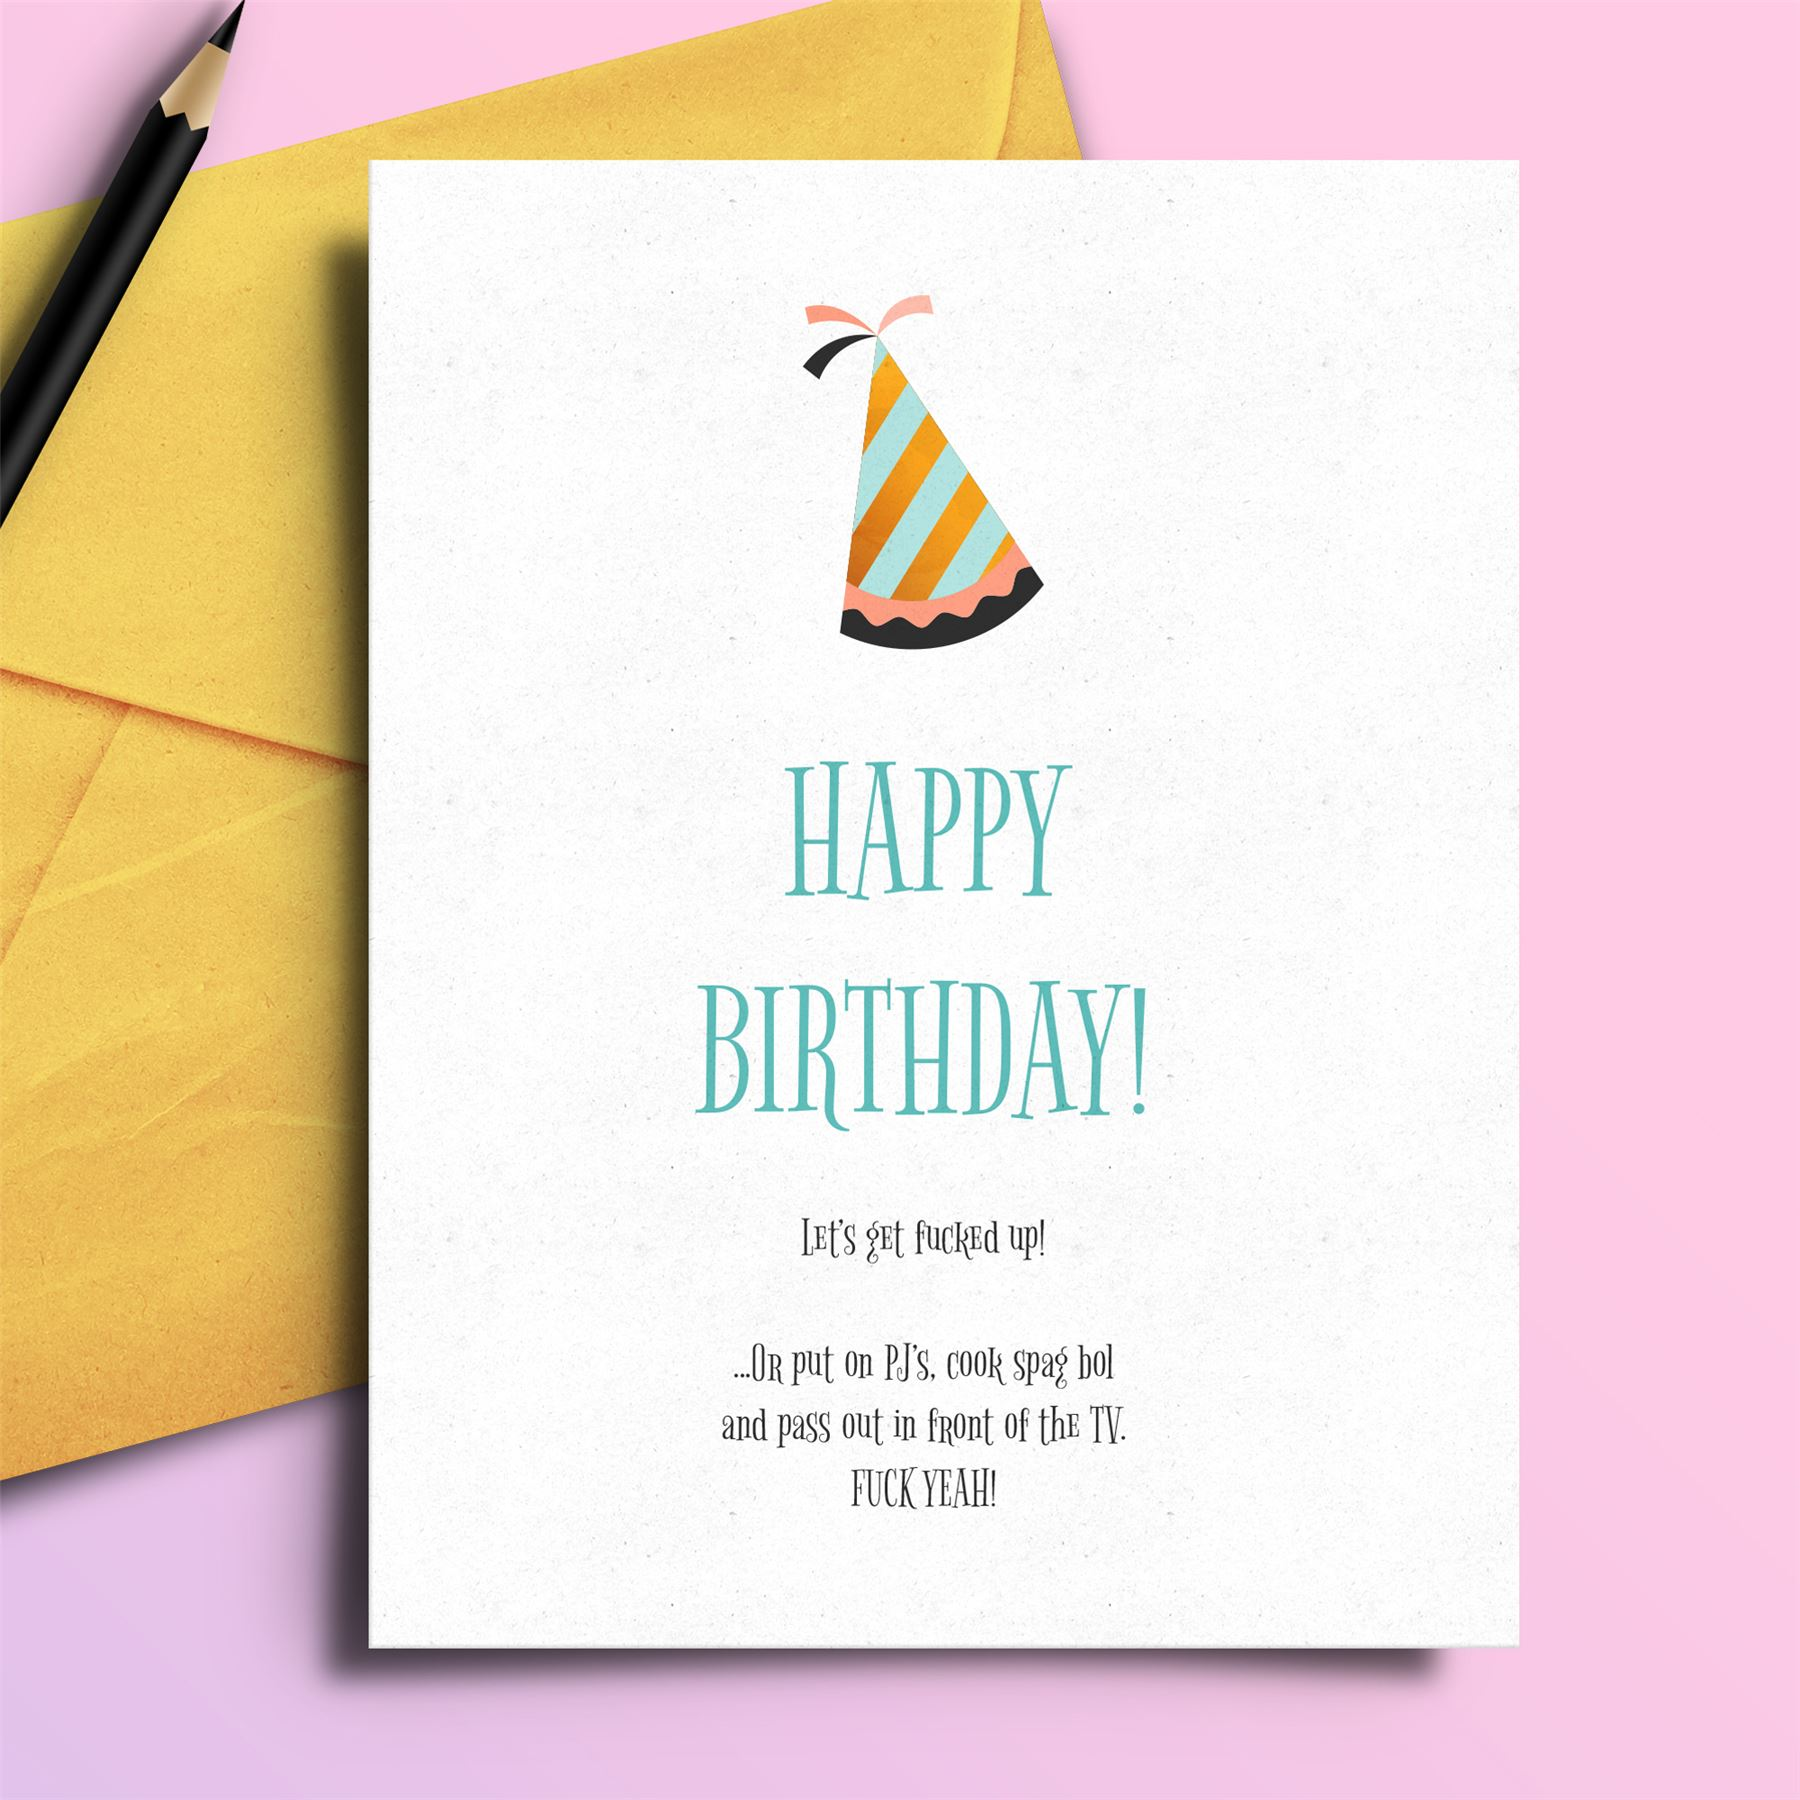 Details About Humorous Birthday Cards Brother Bestfriend Husband Insulting Funny Humour